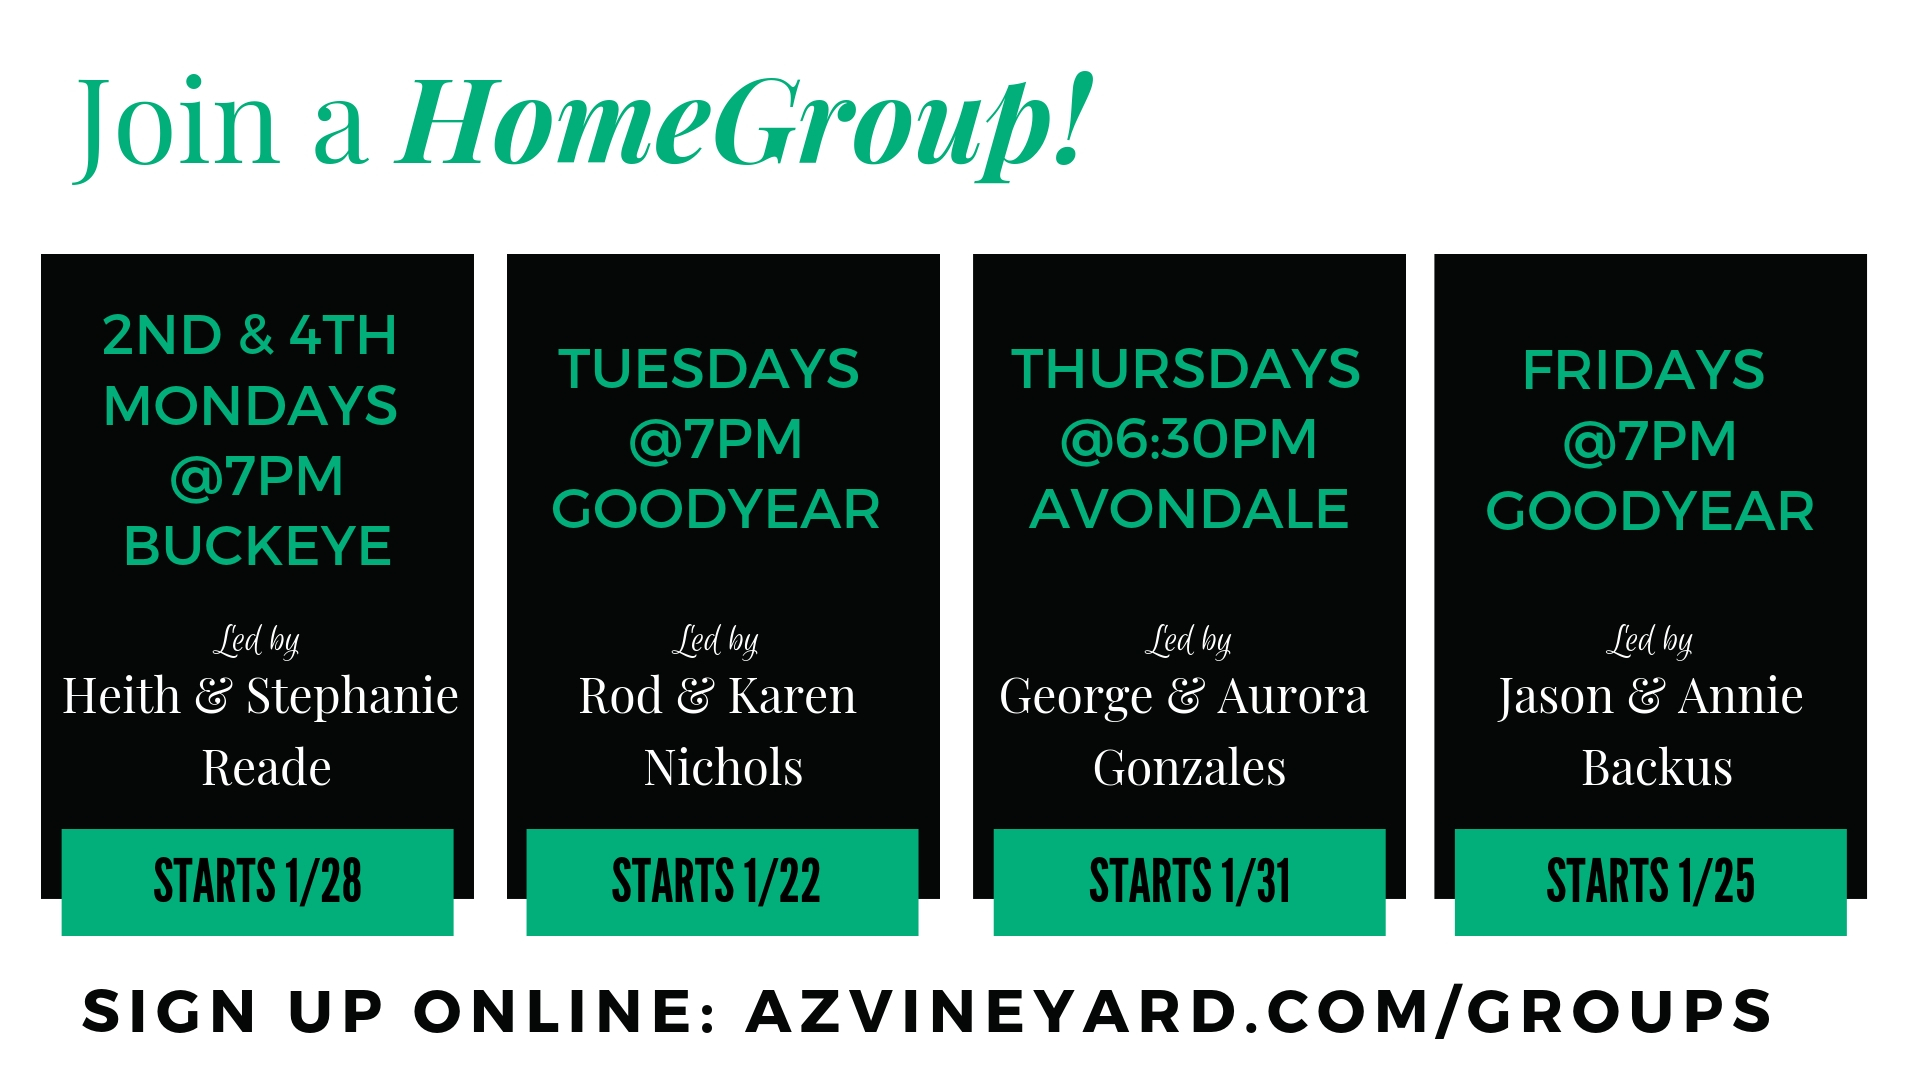 Join a Home Group Slide (Needs Revision).png